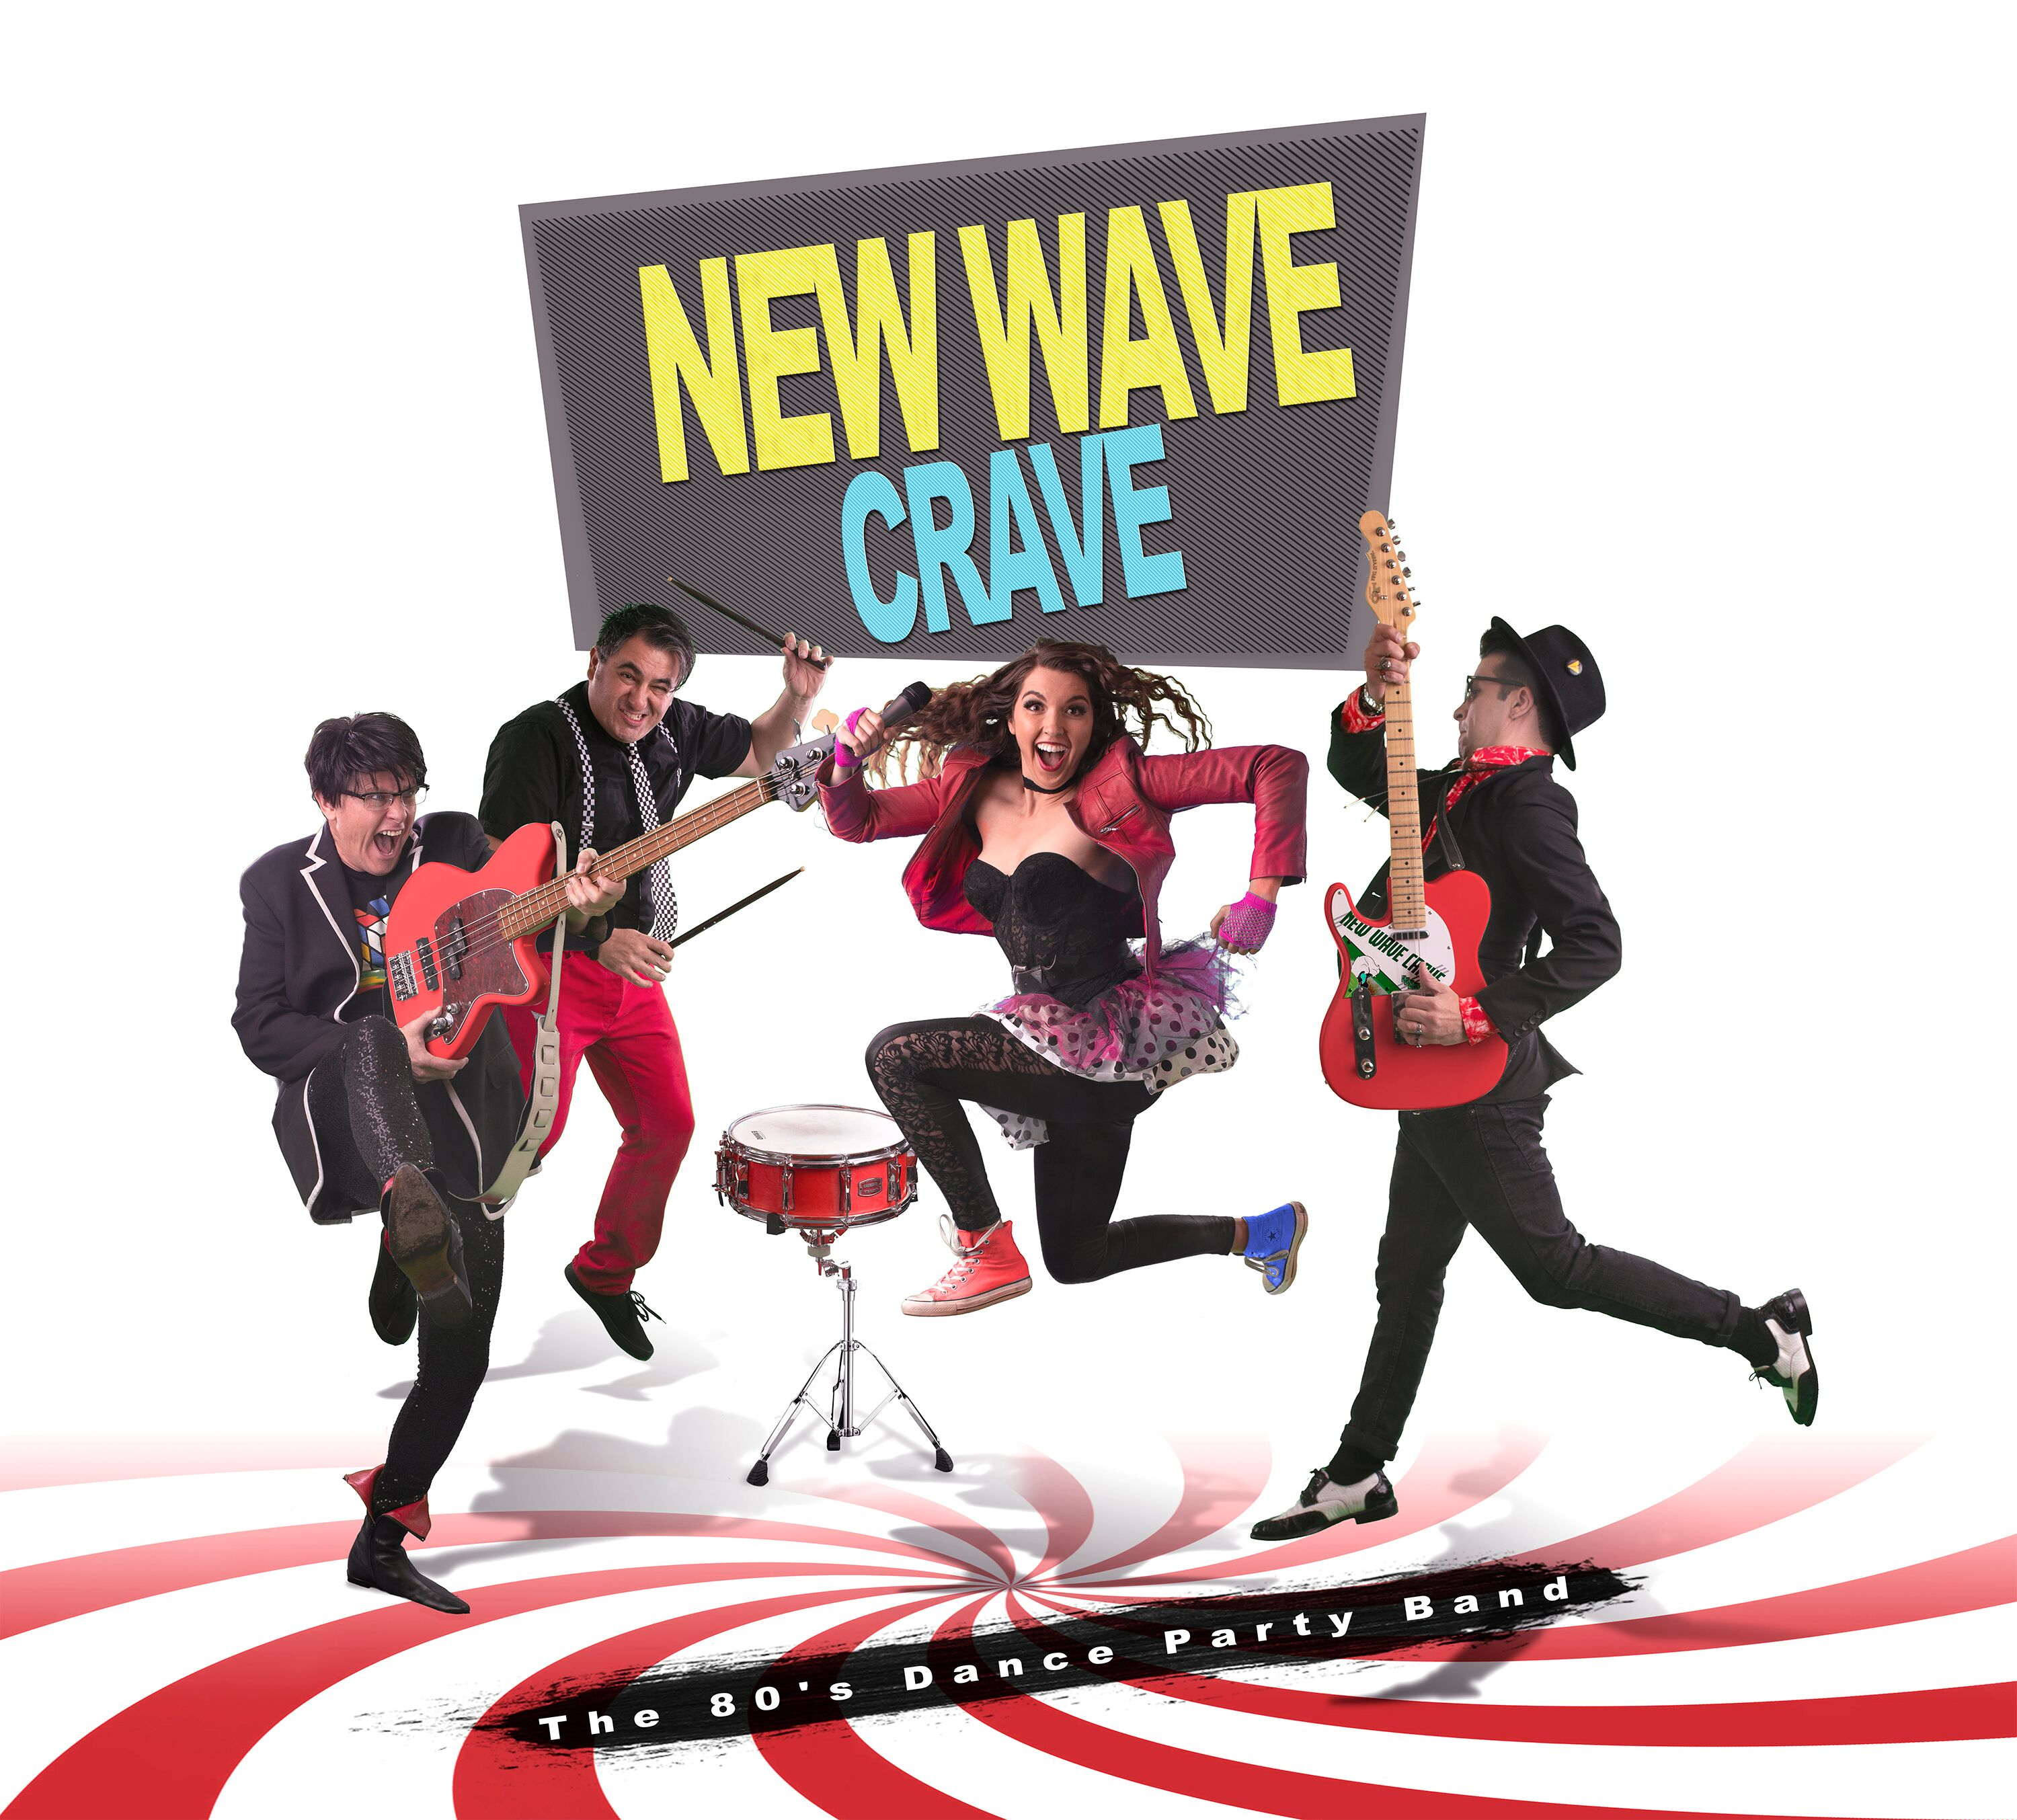 new wave crave band photo with swirl